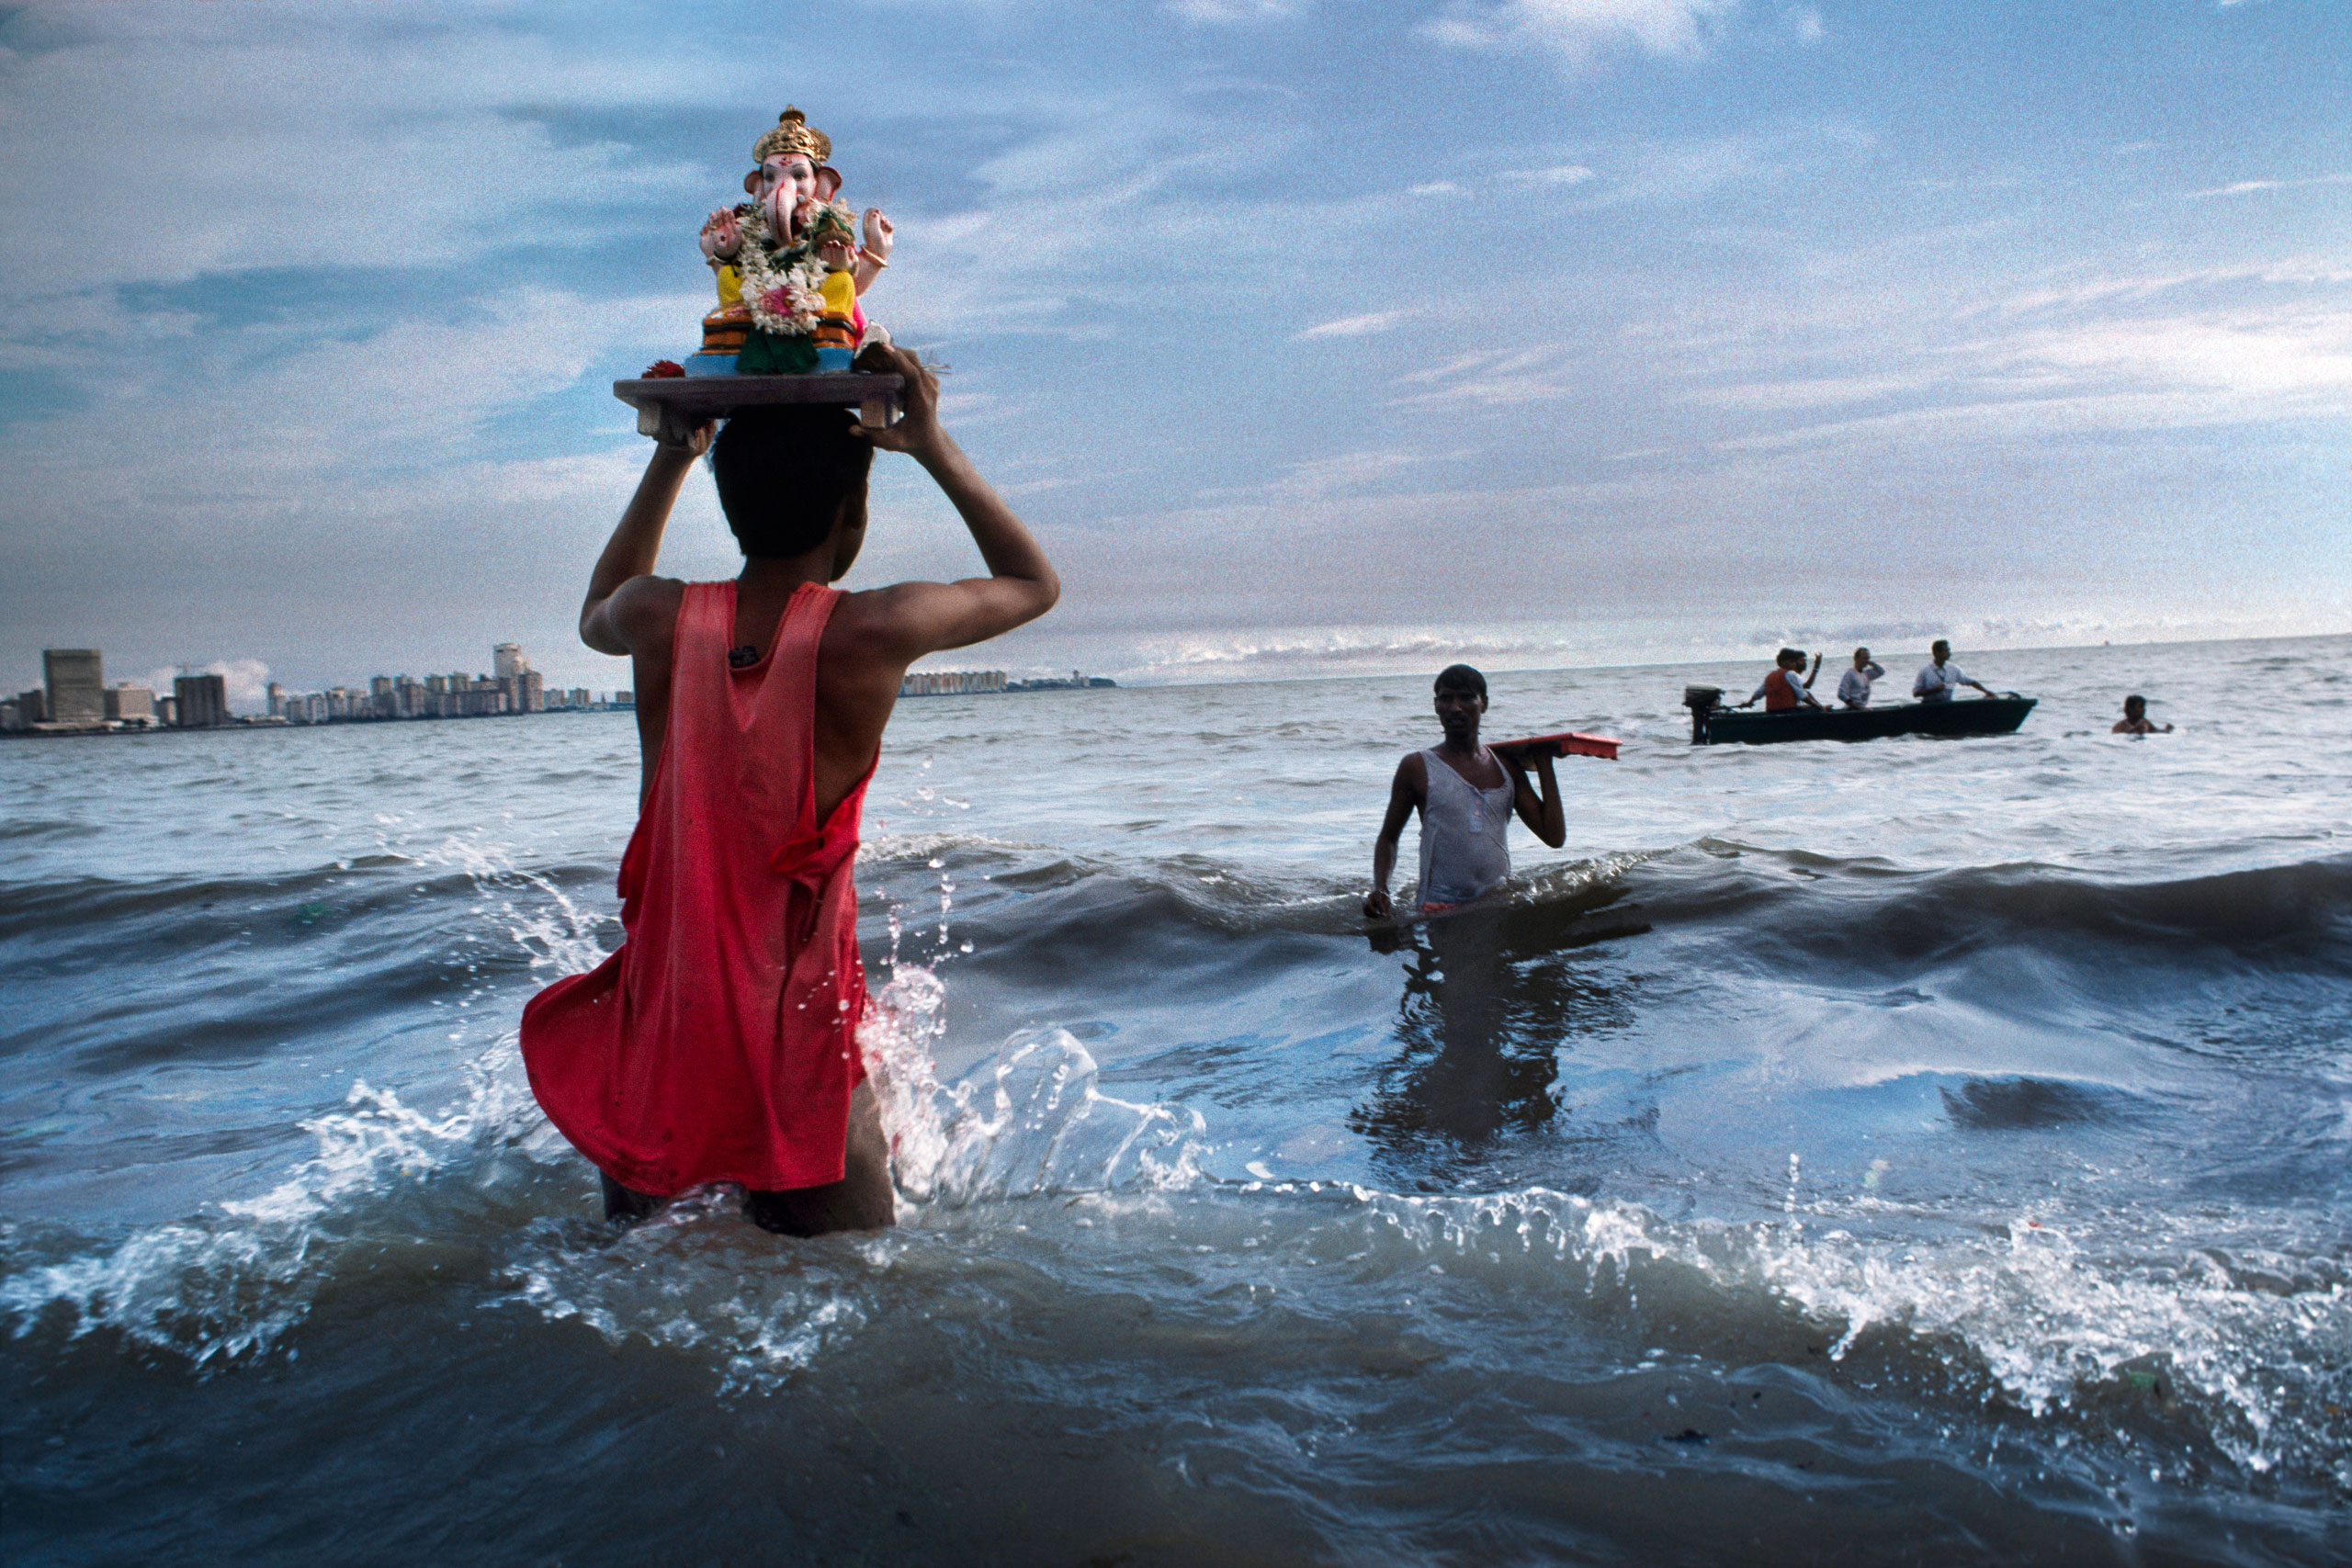 Devotee carries statue of Lord Ganesh into the waters of the Arabian Sea during the immersion ritual off Chowpatty beach.                               Mumbai, 1993